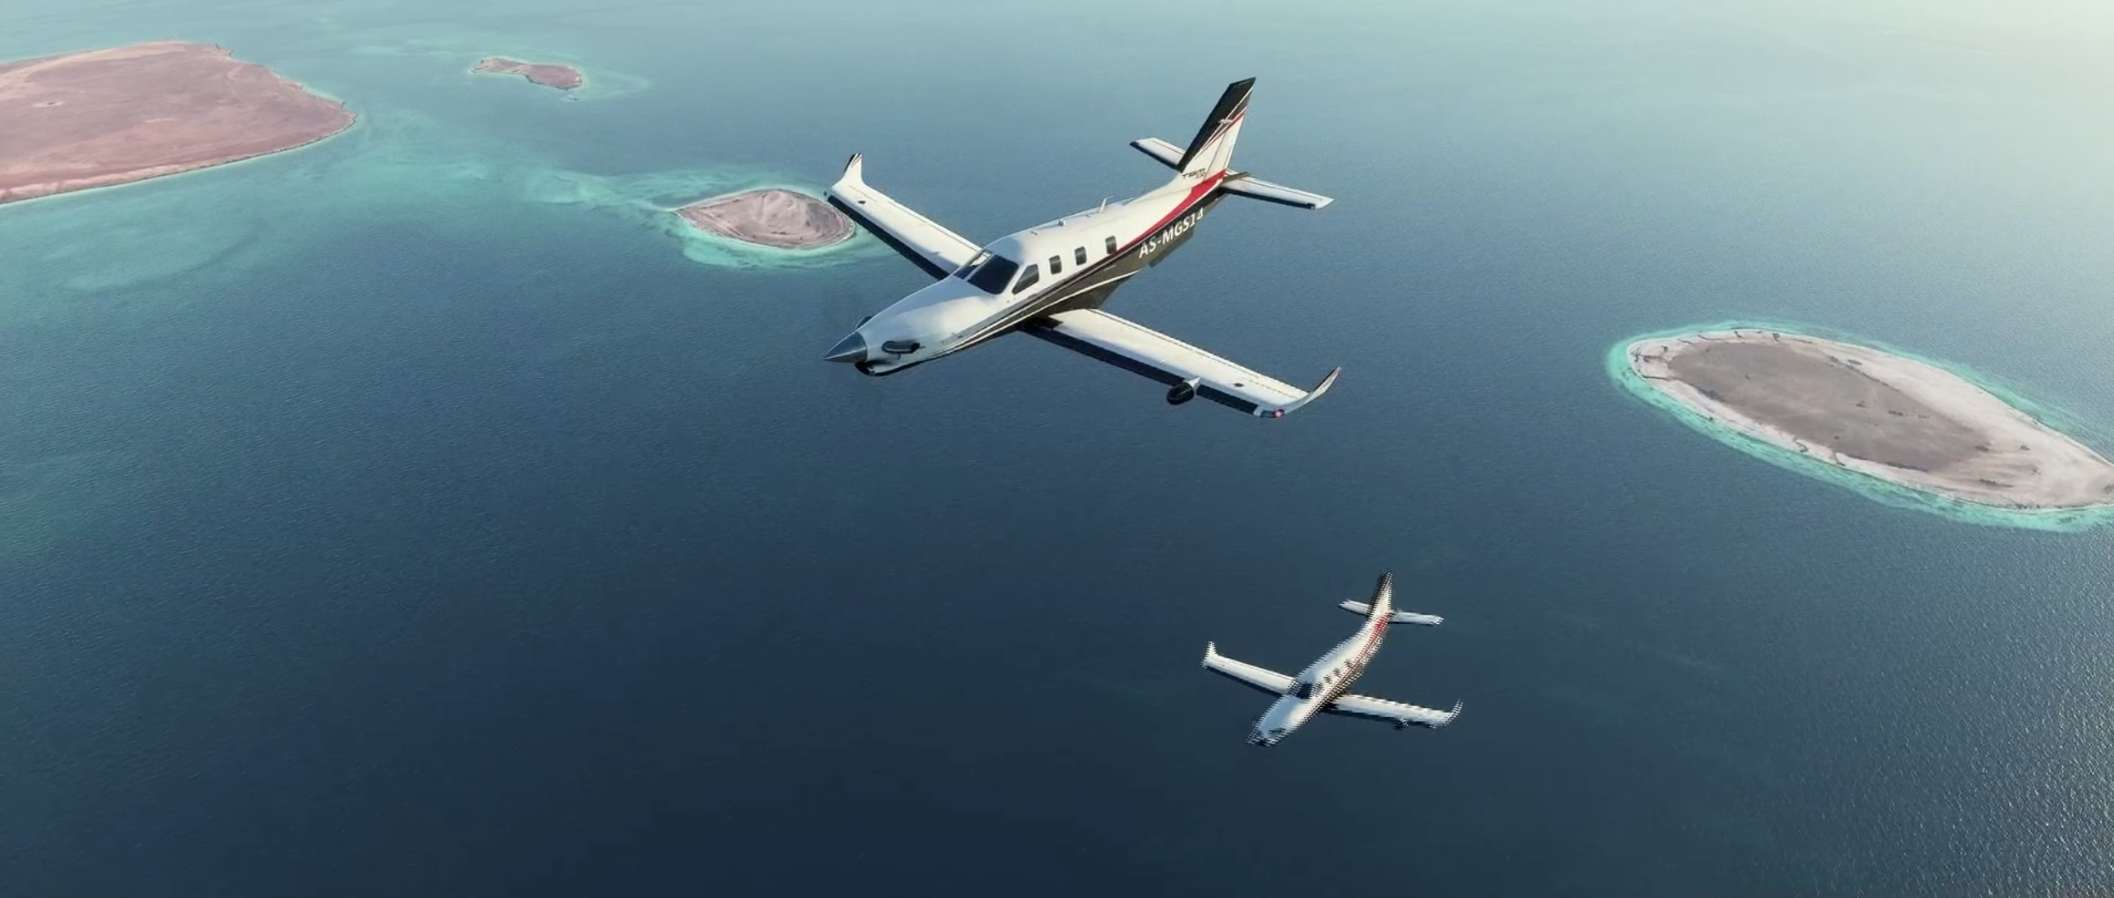 New Microsoft Flight Simulator Looks Uncannily Like Real Life